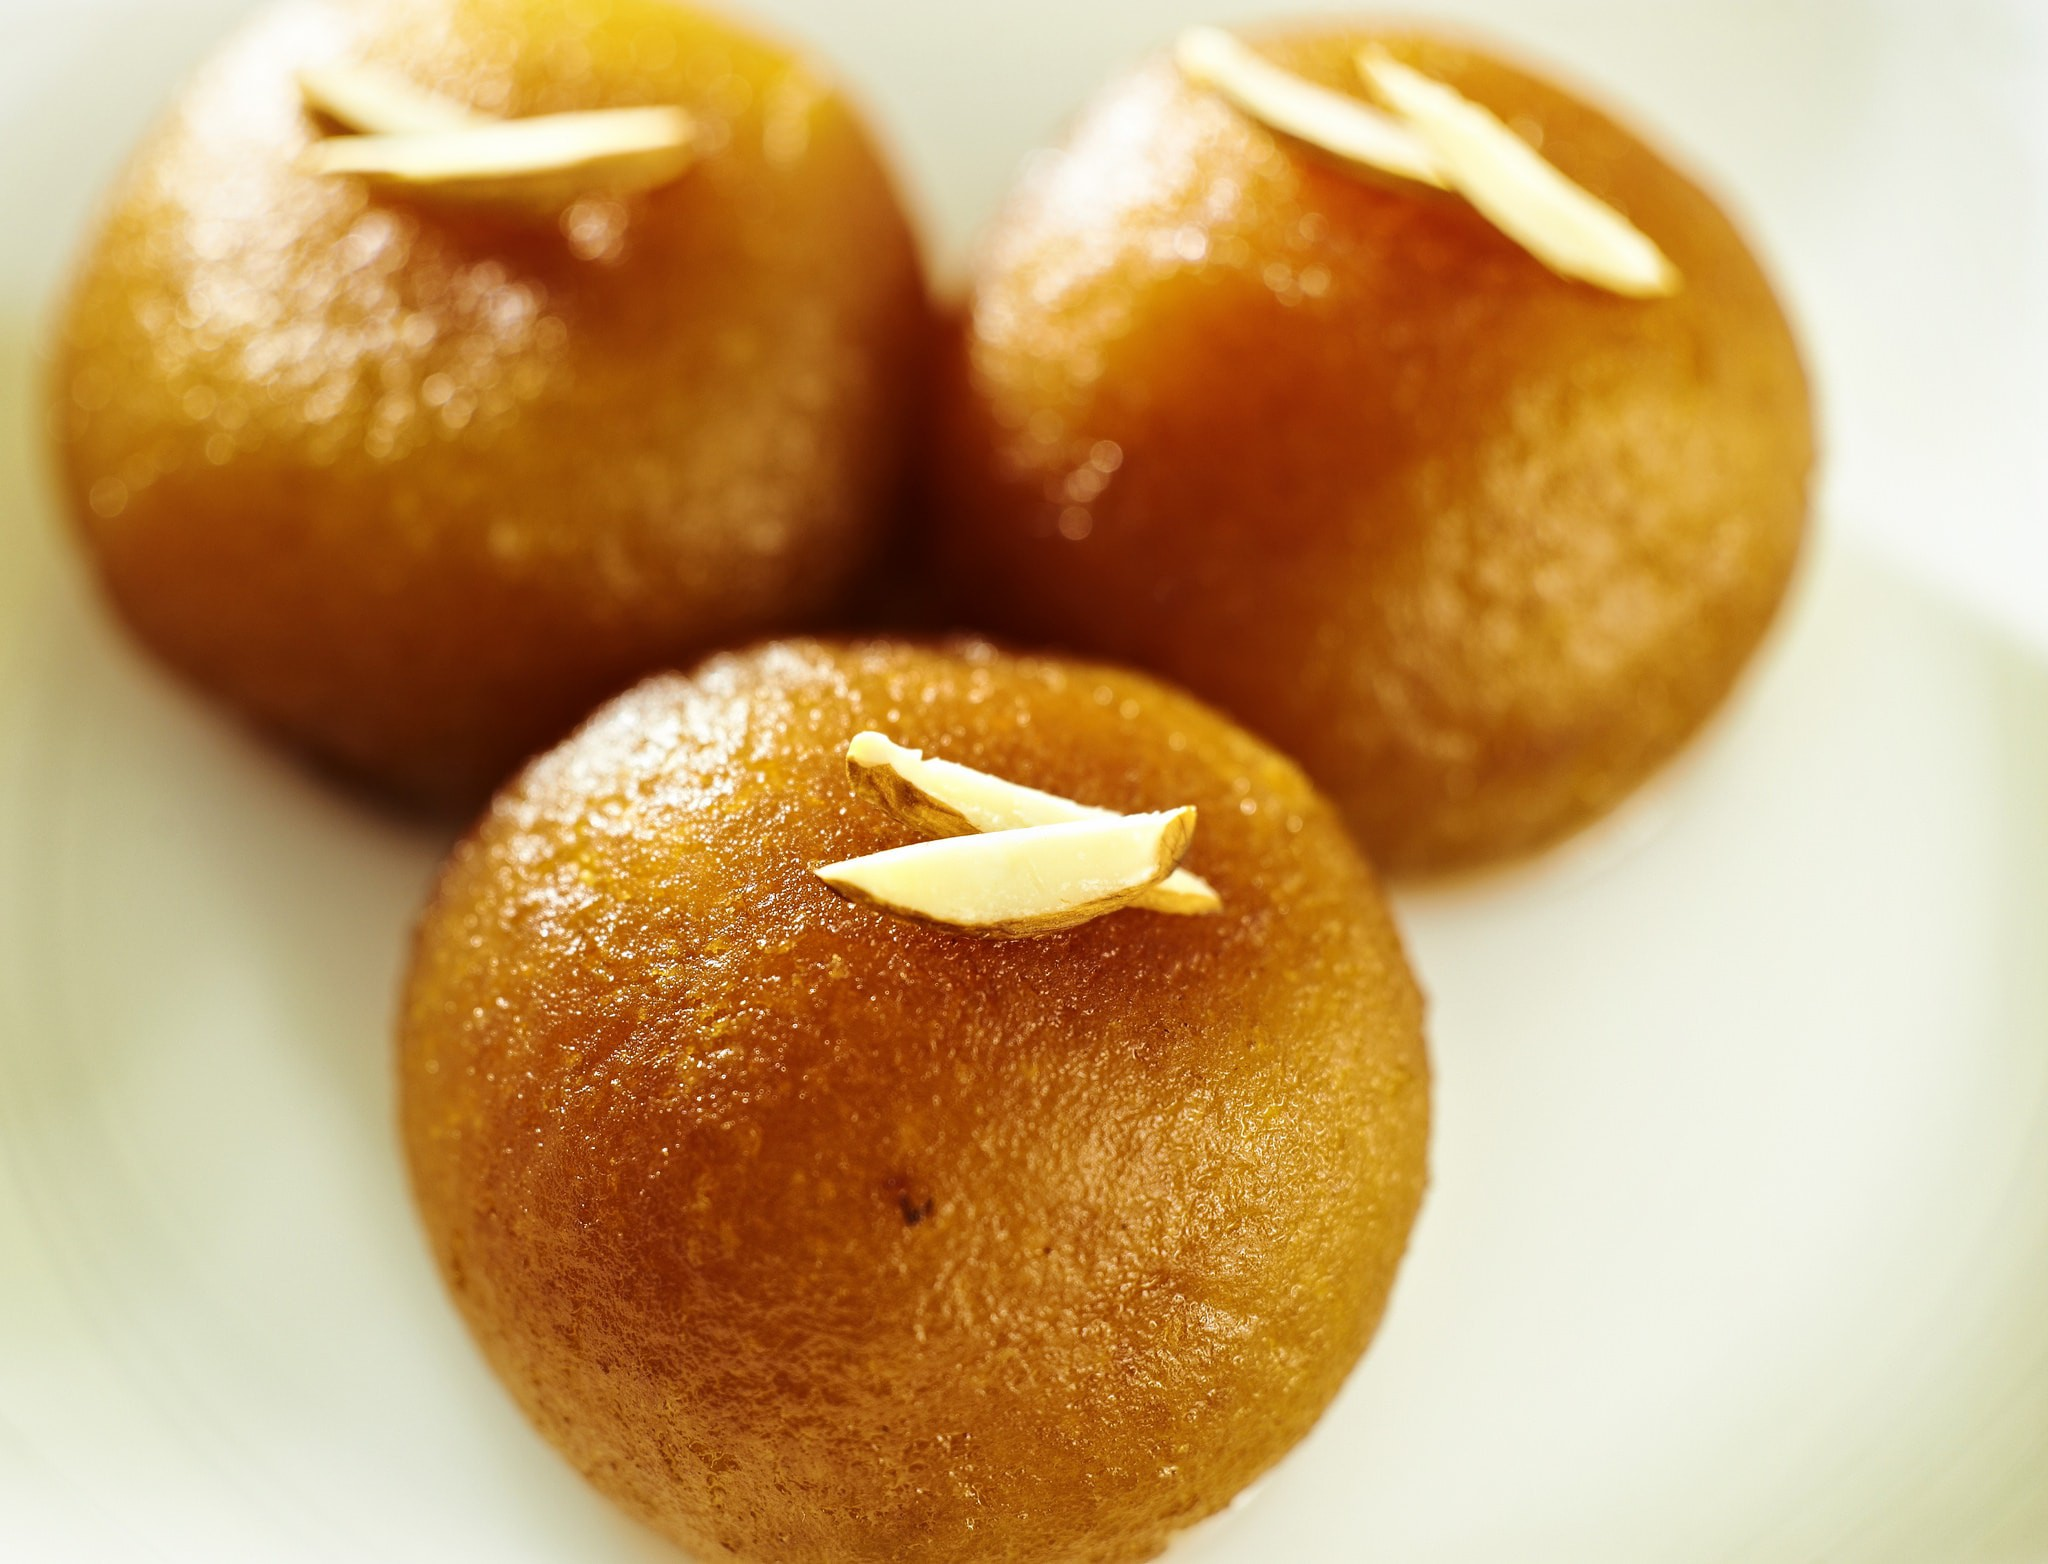 India's 15 Most Popular and Mouth-Watering Desserts